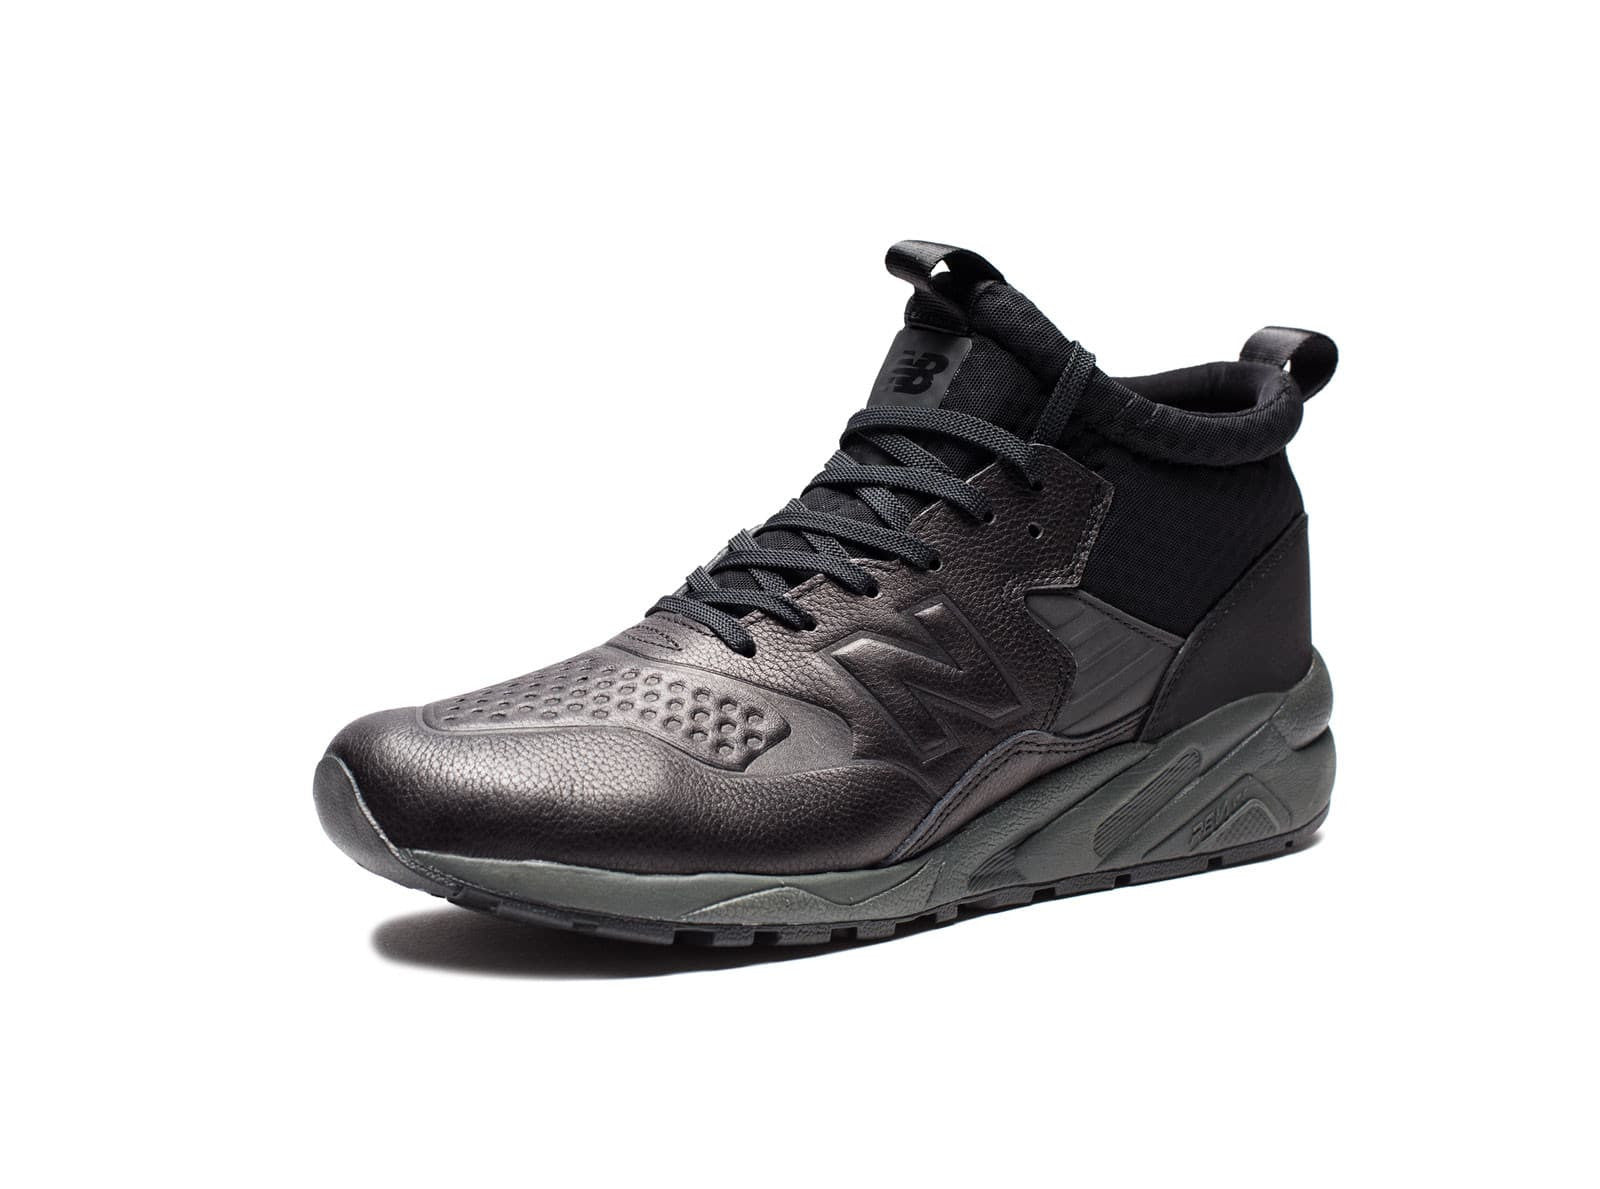 NEW BALANCE 580 DECONSTRUCTED MID - BLACK